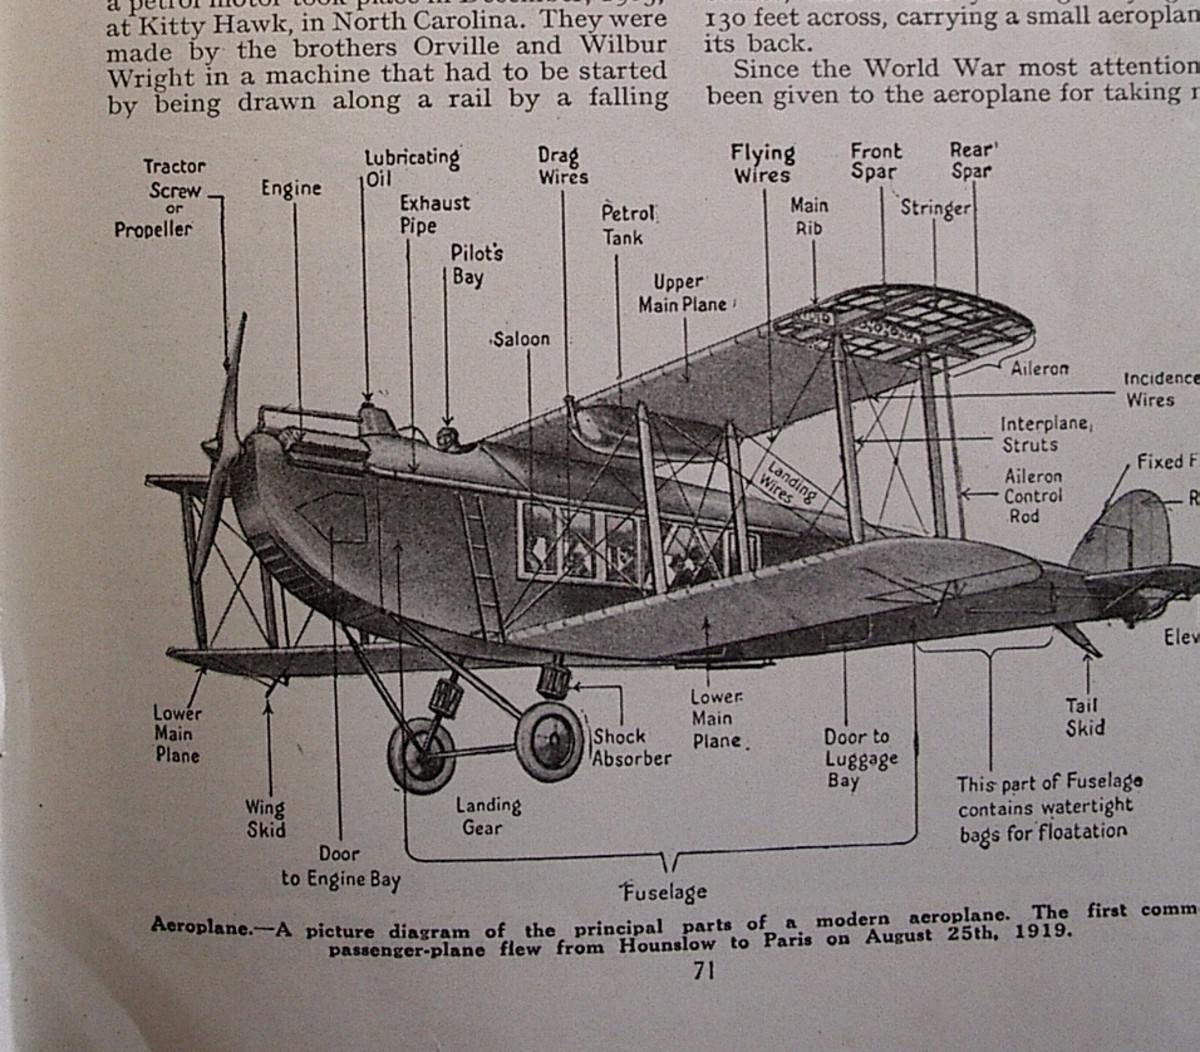 And how about this for the most modern up-to-date airplane?